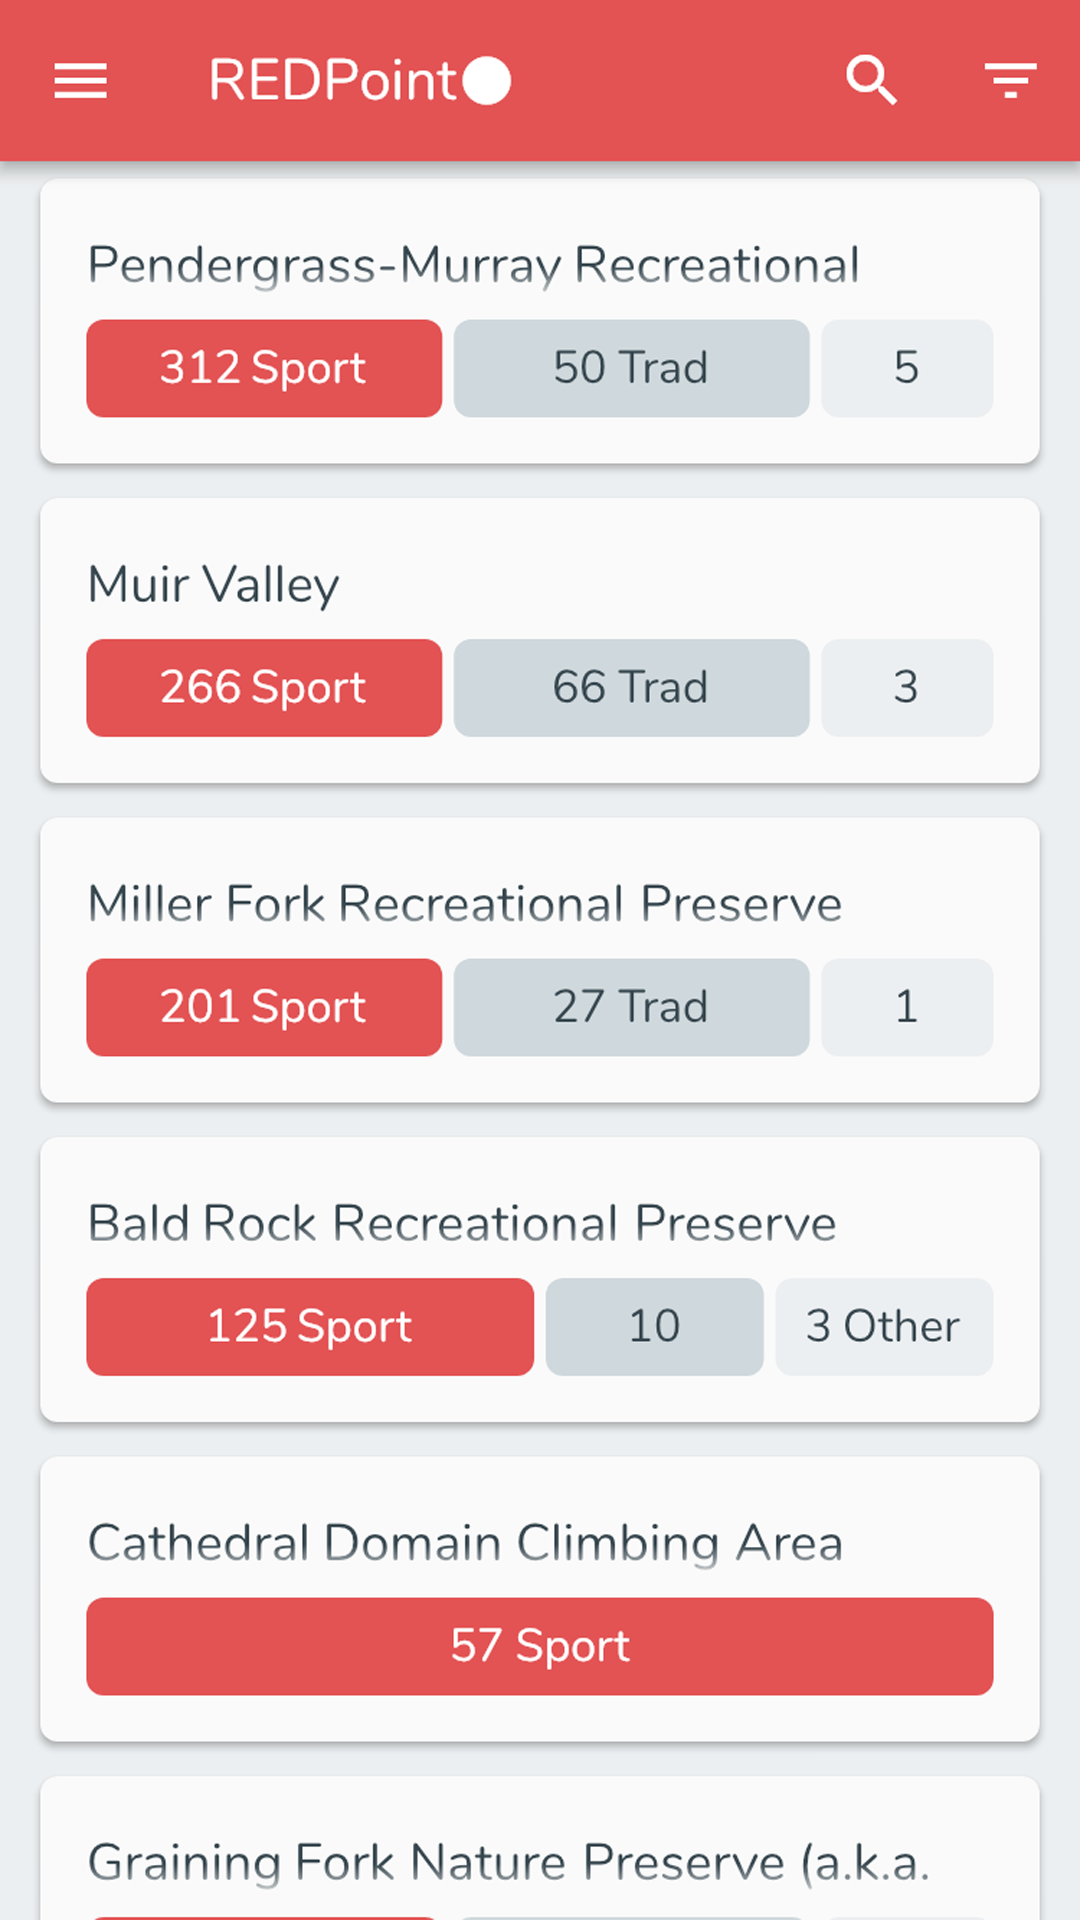 Redpoint - Red River Gorge Climbing Guide | It's All Widgets!